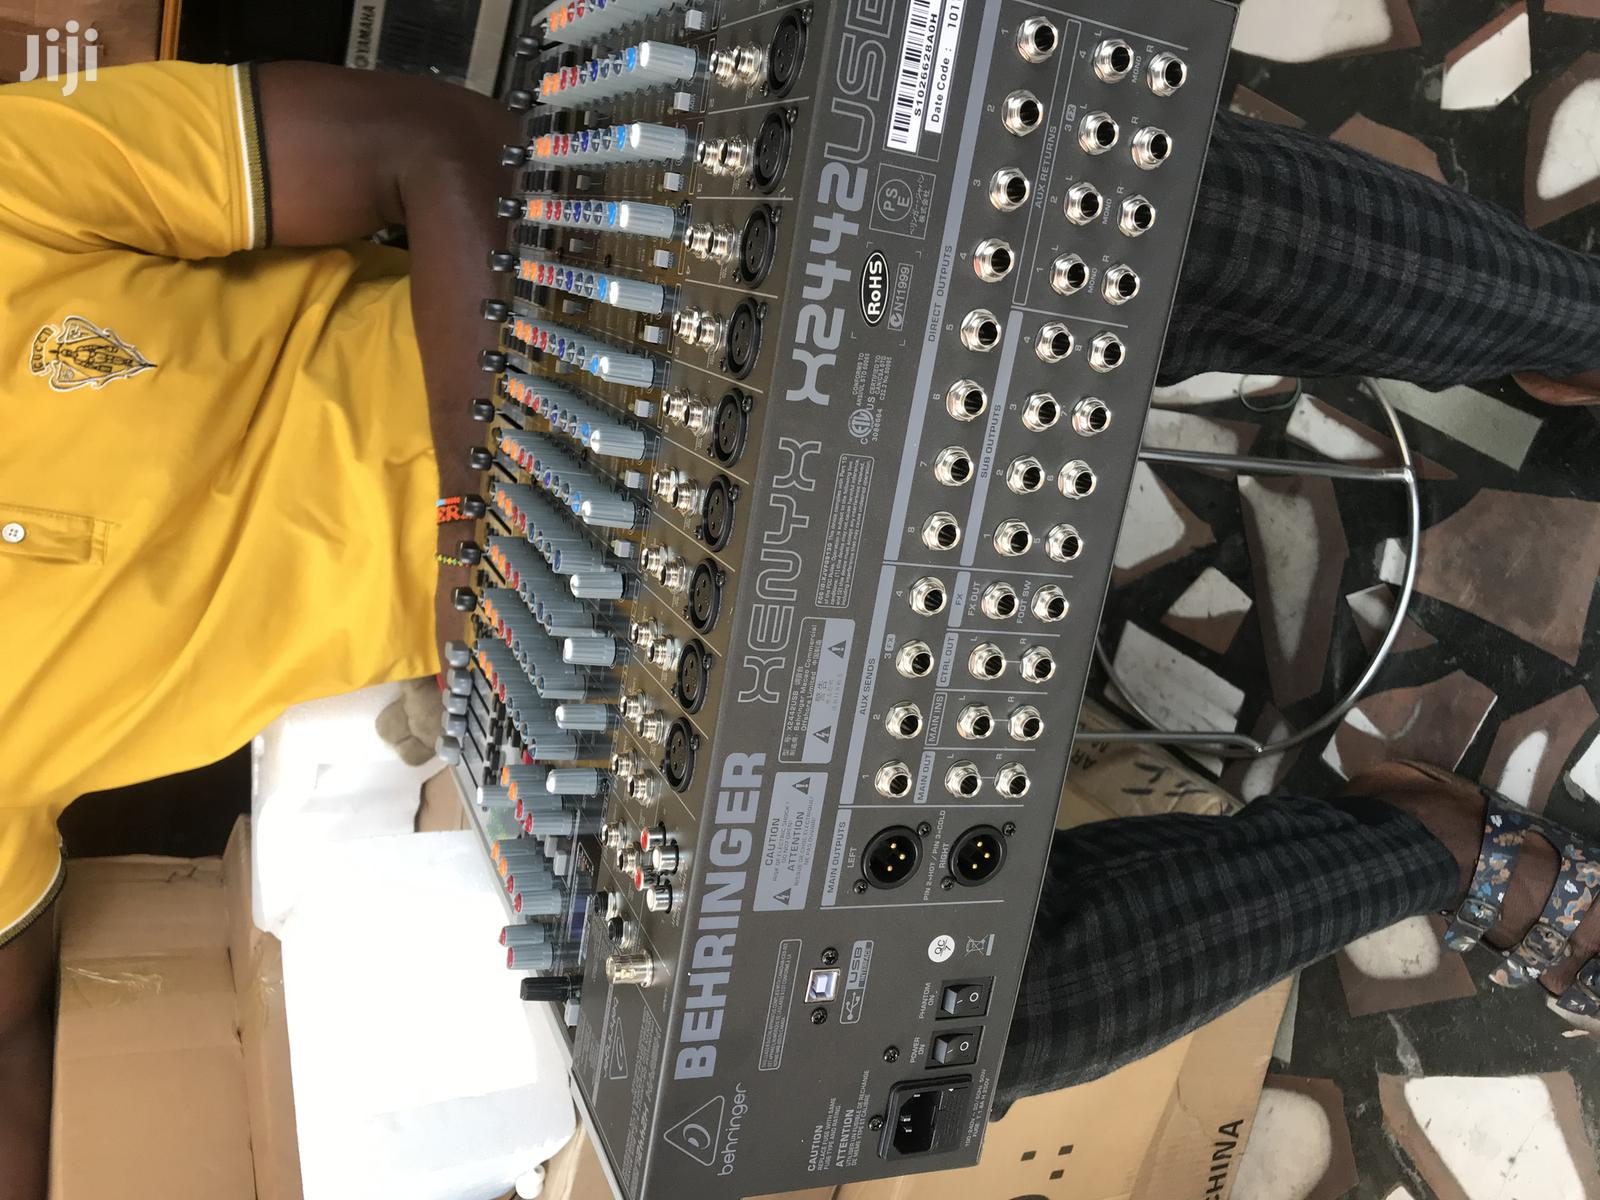 Behringer Studio Mixer Usb | Audio & Music Equipment for sale in Accra Metropolitan, Greater Accra, Ghana